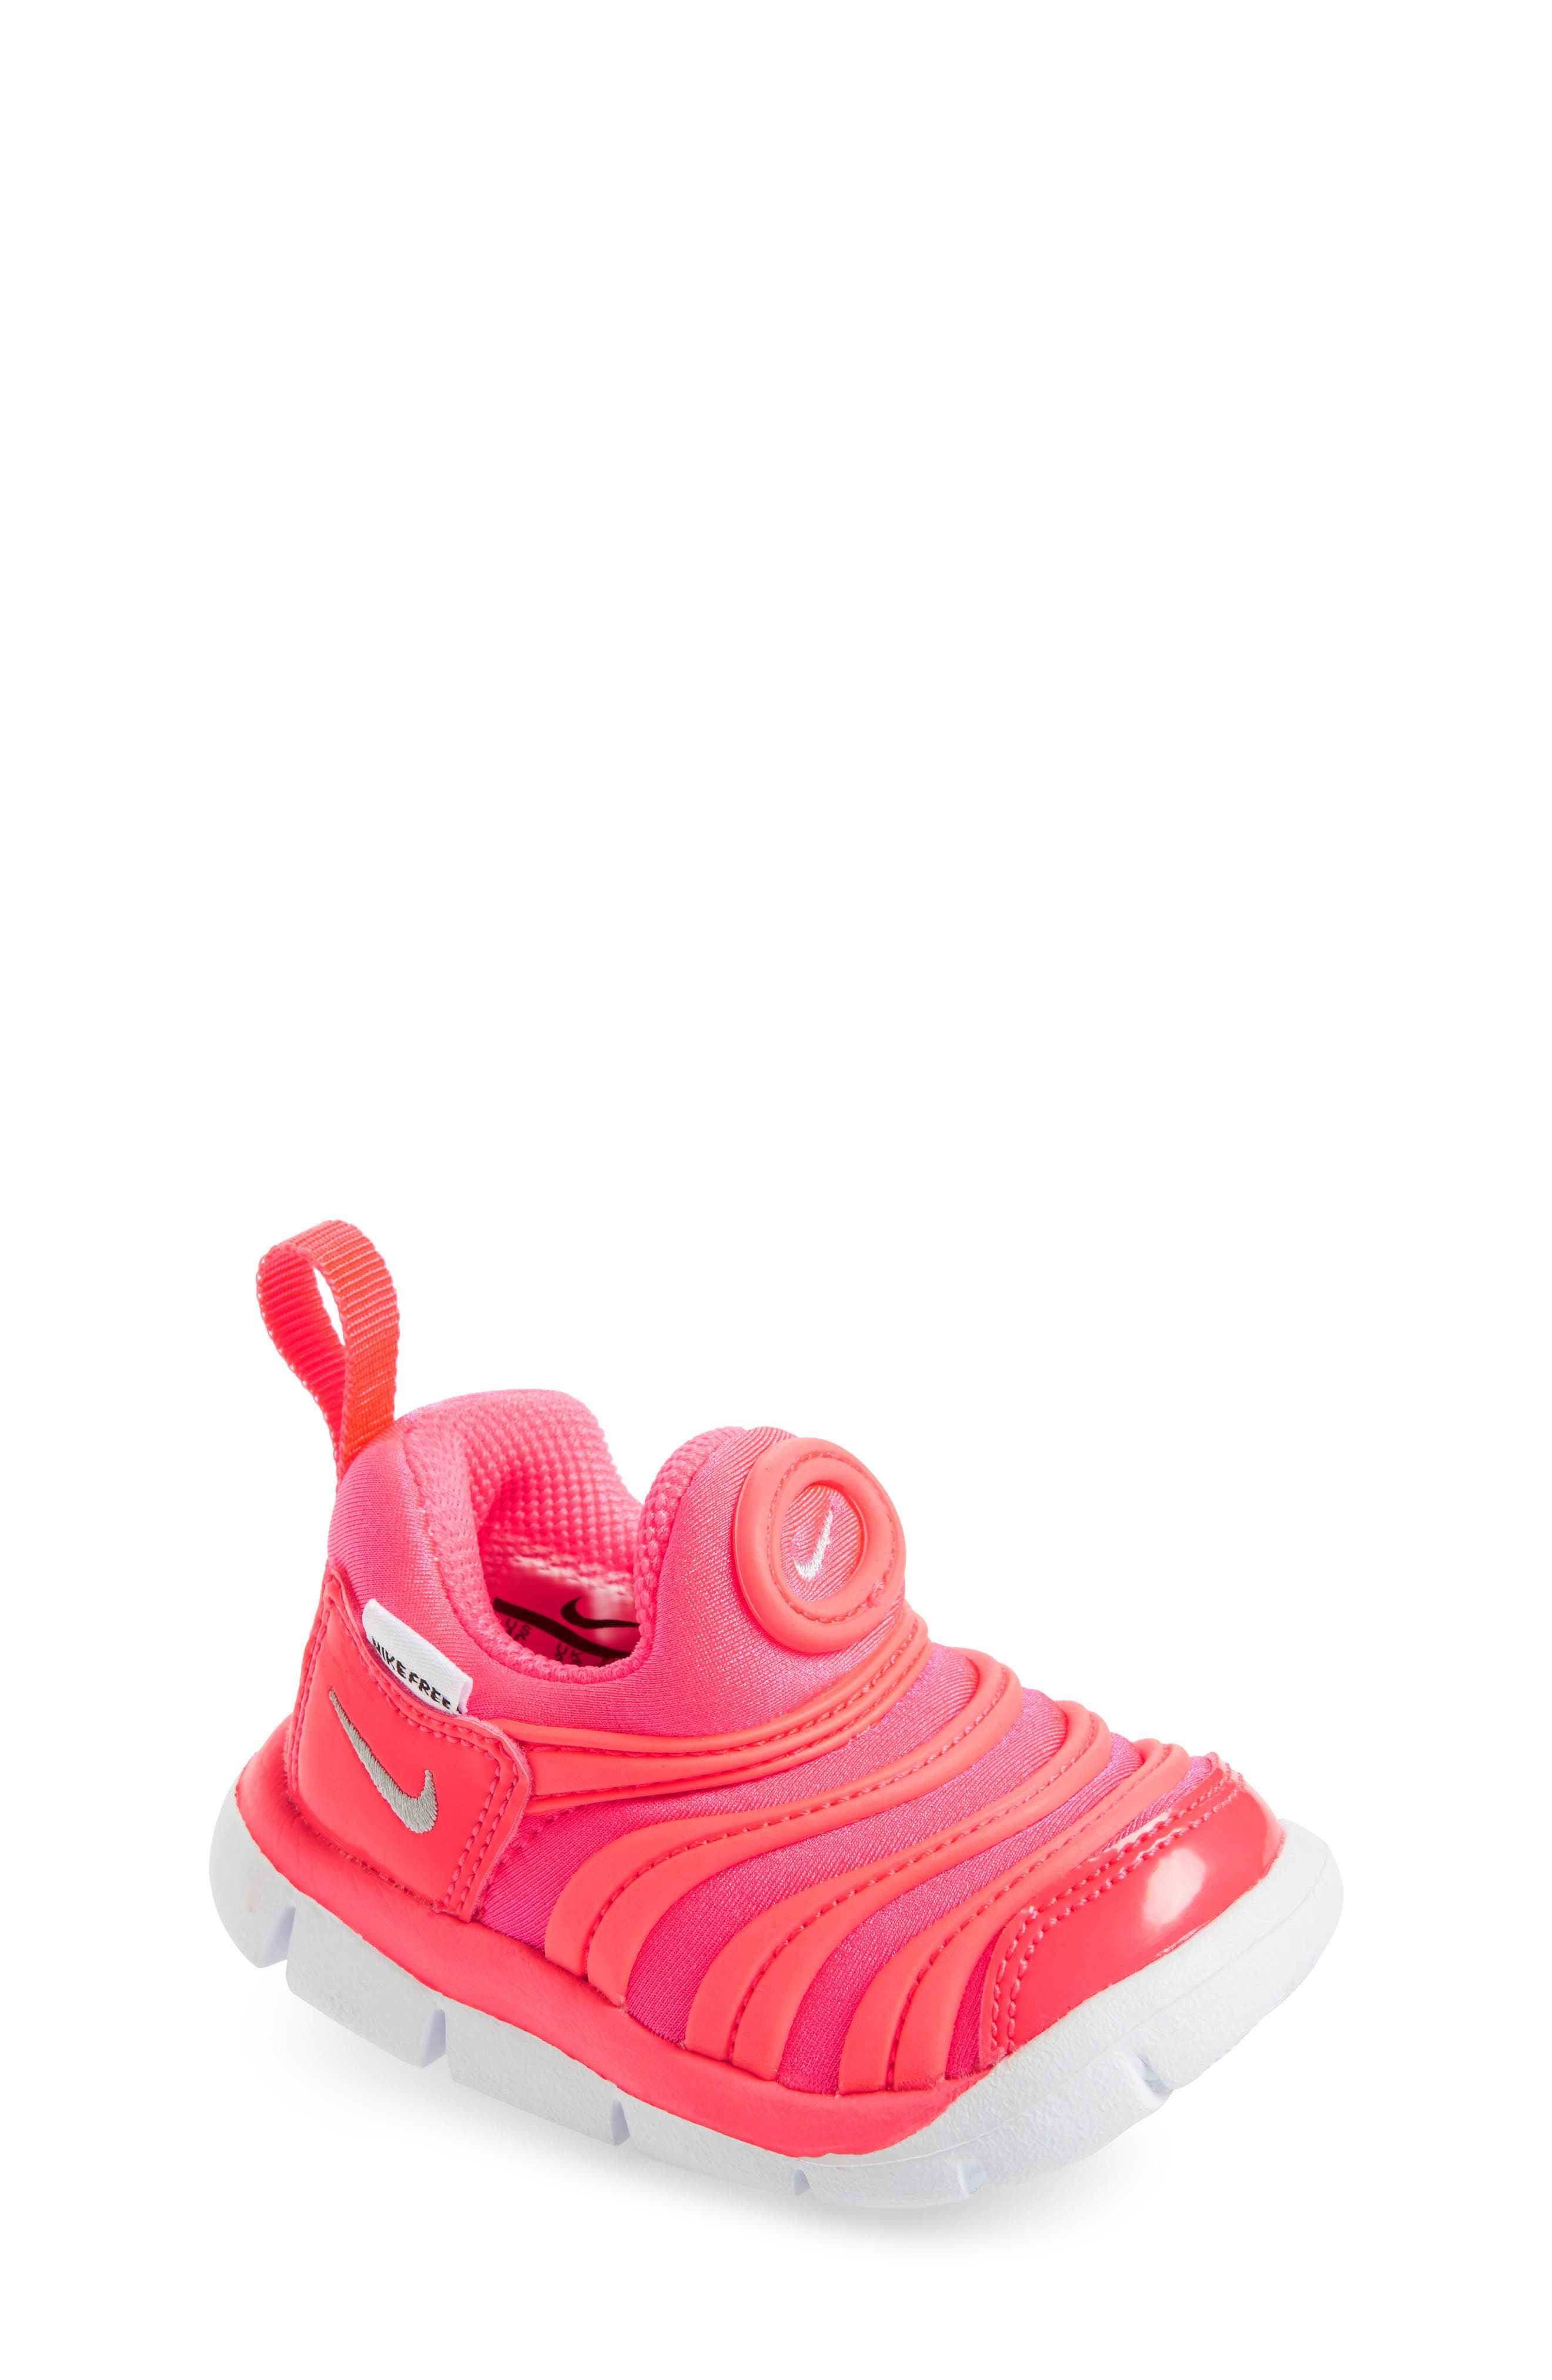 Dynamo Free Sneaker,                             Main thumbnail 1, color,                             Racer Pink/ Silver/ Hot Punch